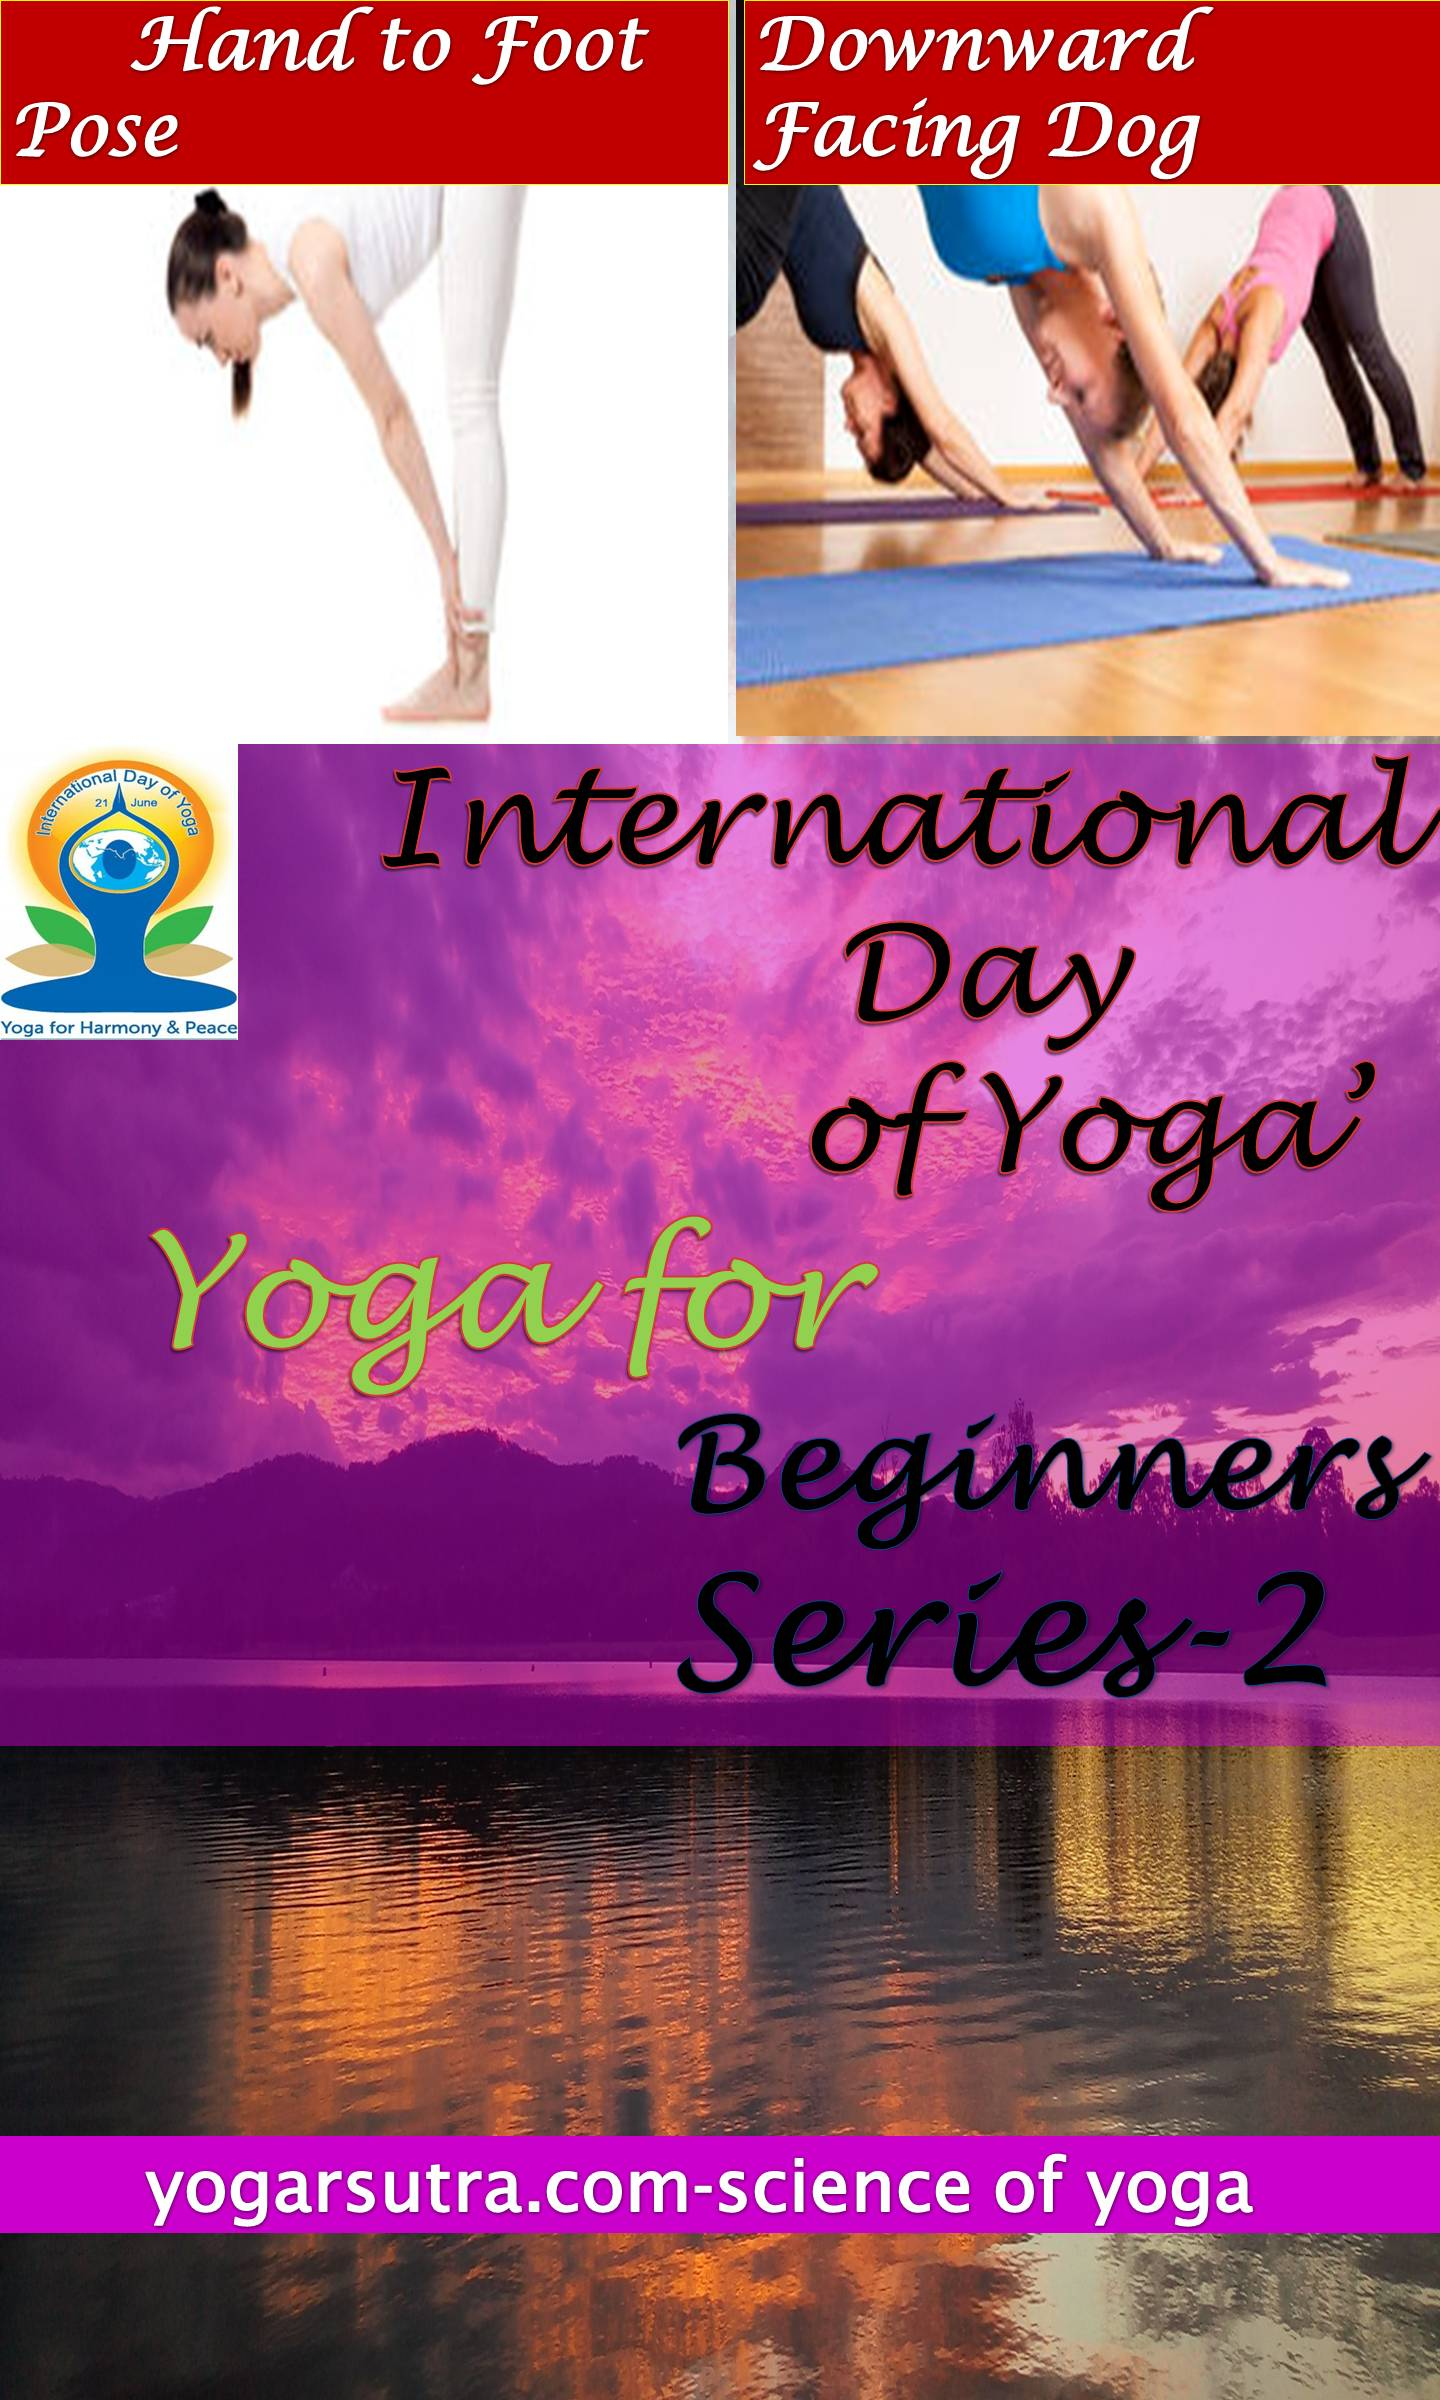 yoga for beginners series-2